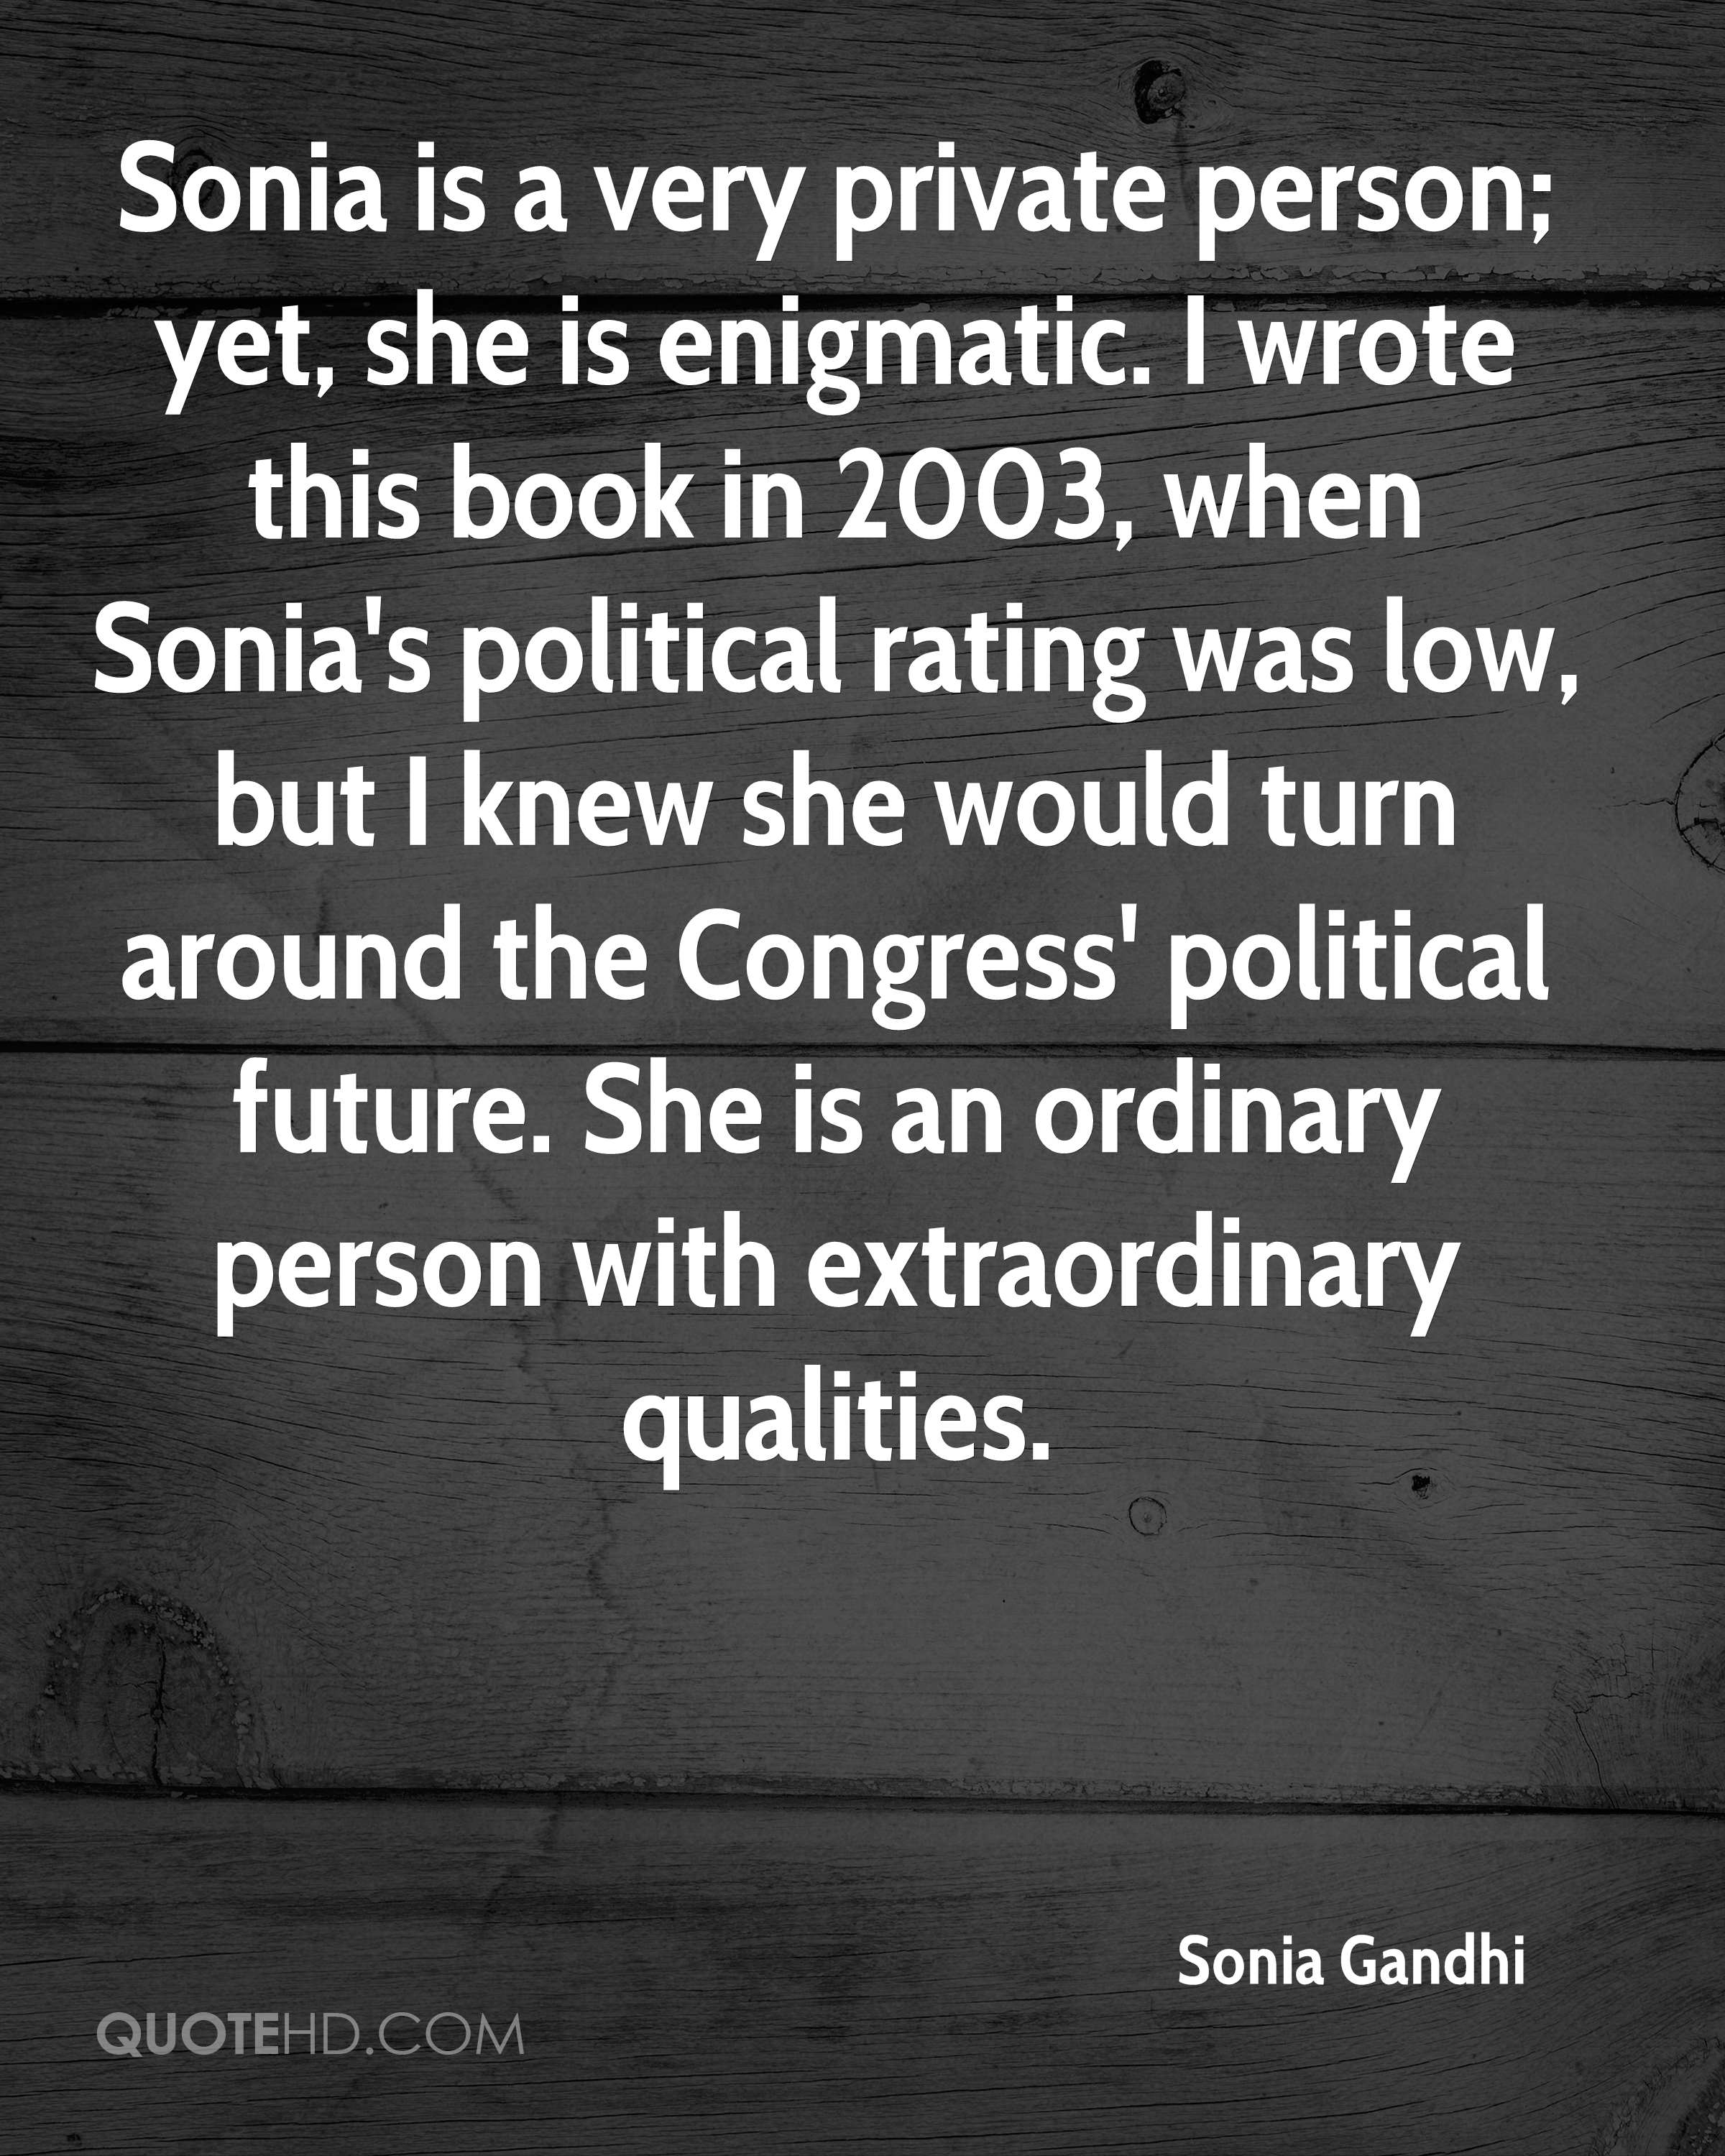 Sonia is a very private person; yet, she is enigmatic. I wrote this book in 2003, when Sonia's political rating was low, but I knew she would turn around the Congress' political future. She is an ordinary person with extraordinary qualities.